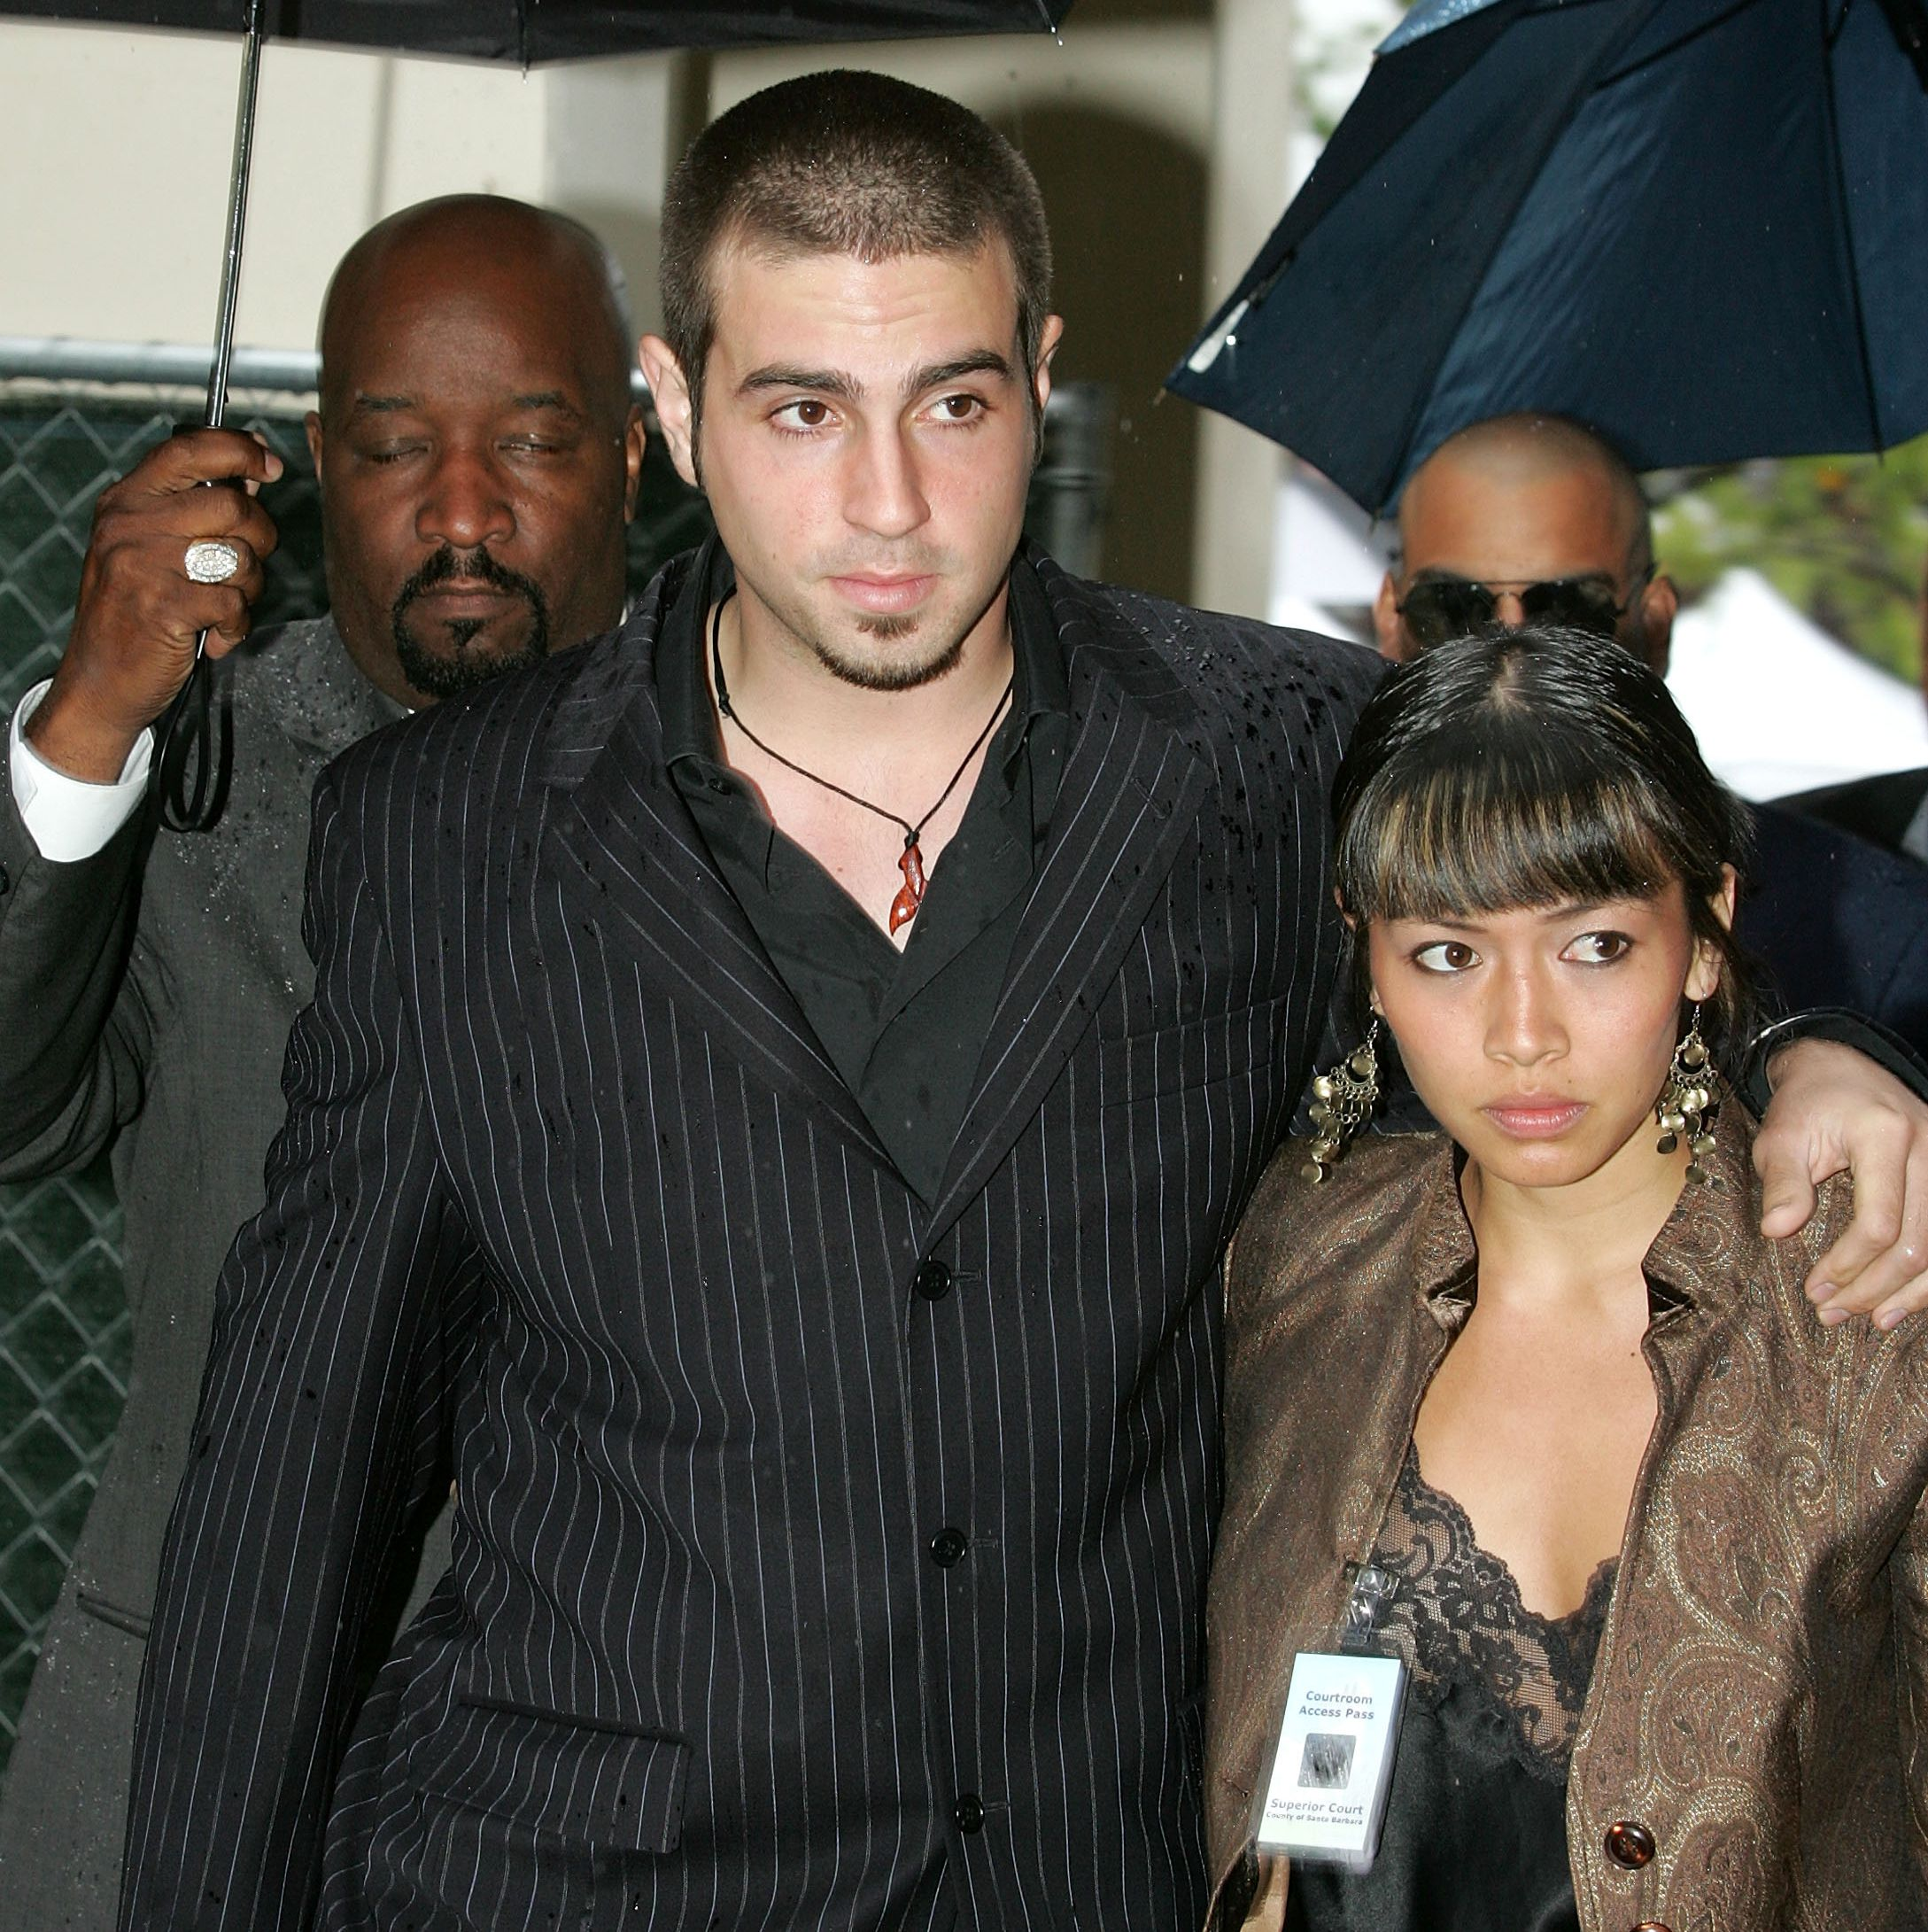 Robson arrives at the court house with his wife Amanda to testify on behalf of Michael Jackson in 2005.